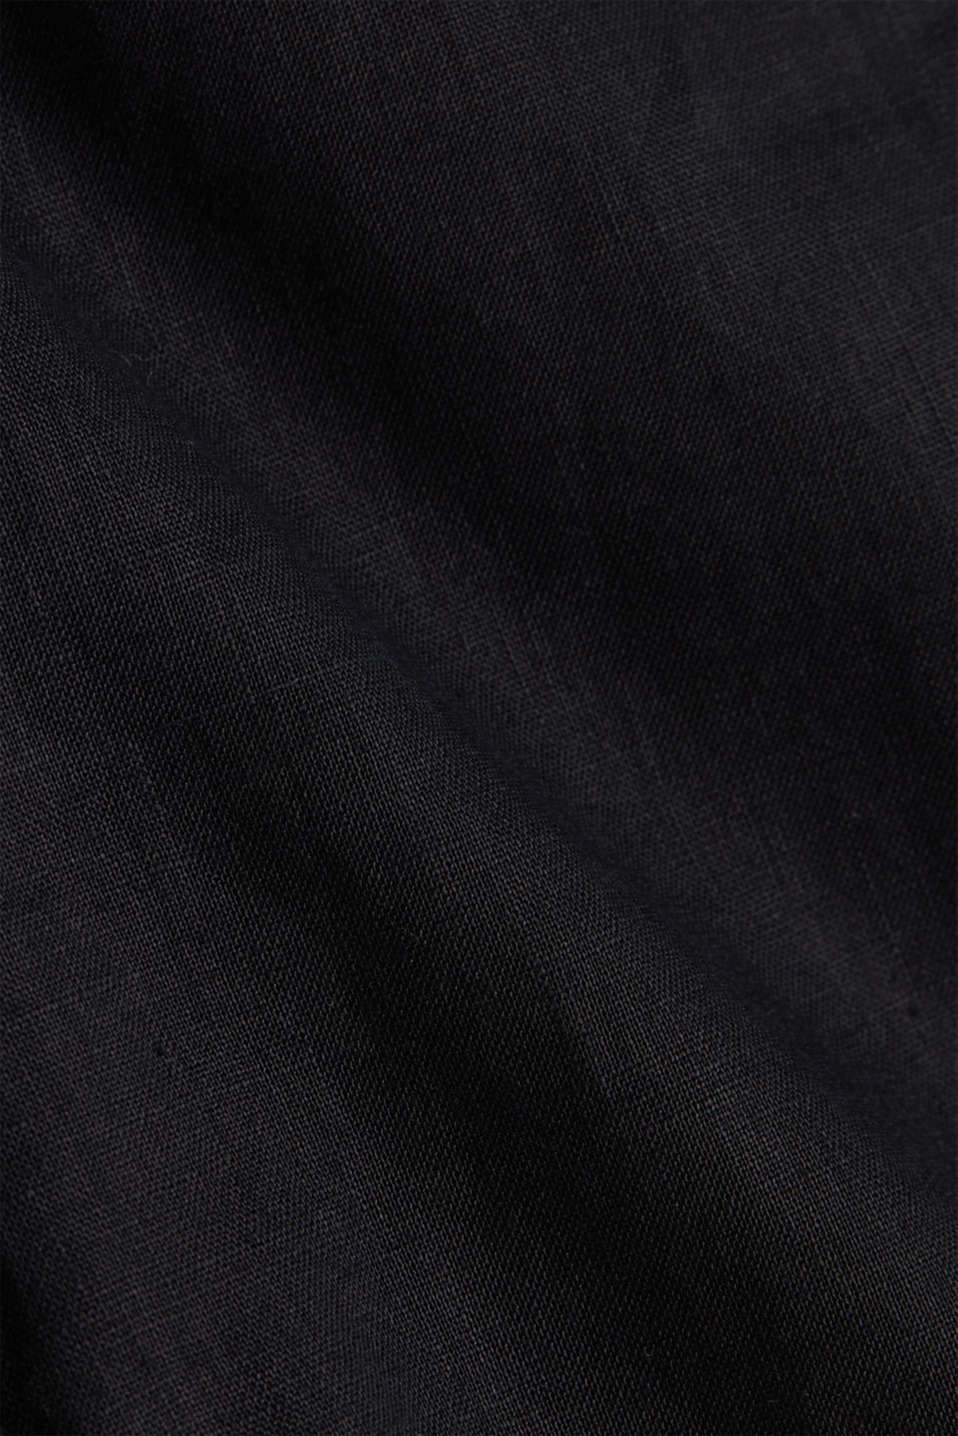 Made of linen: Skirt with a button placket, BLACK, detail image number 4